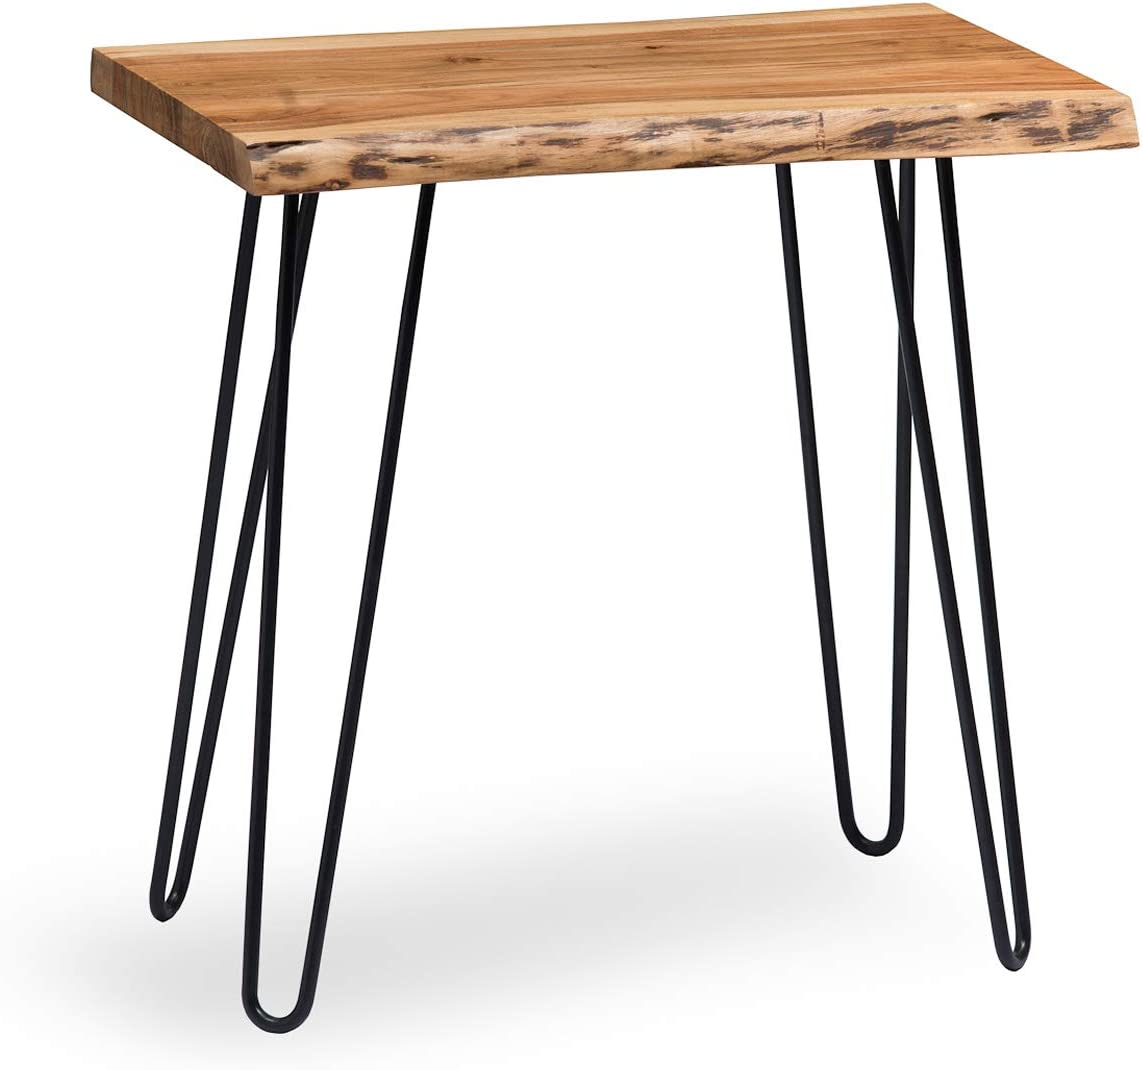 Alaterre Furniture Hairpin Natural End Table, Live Edge